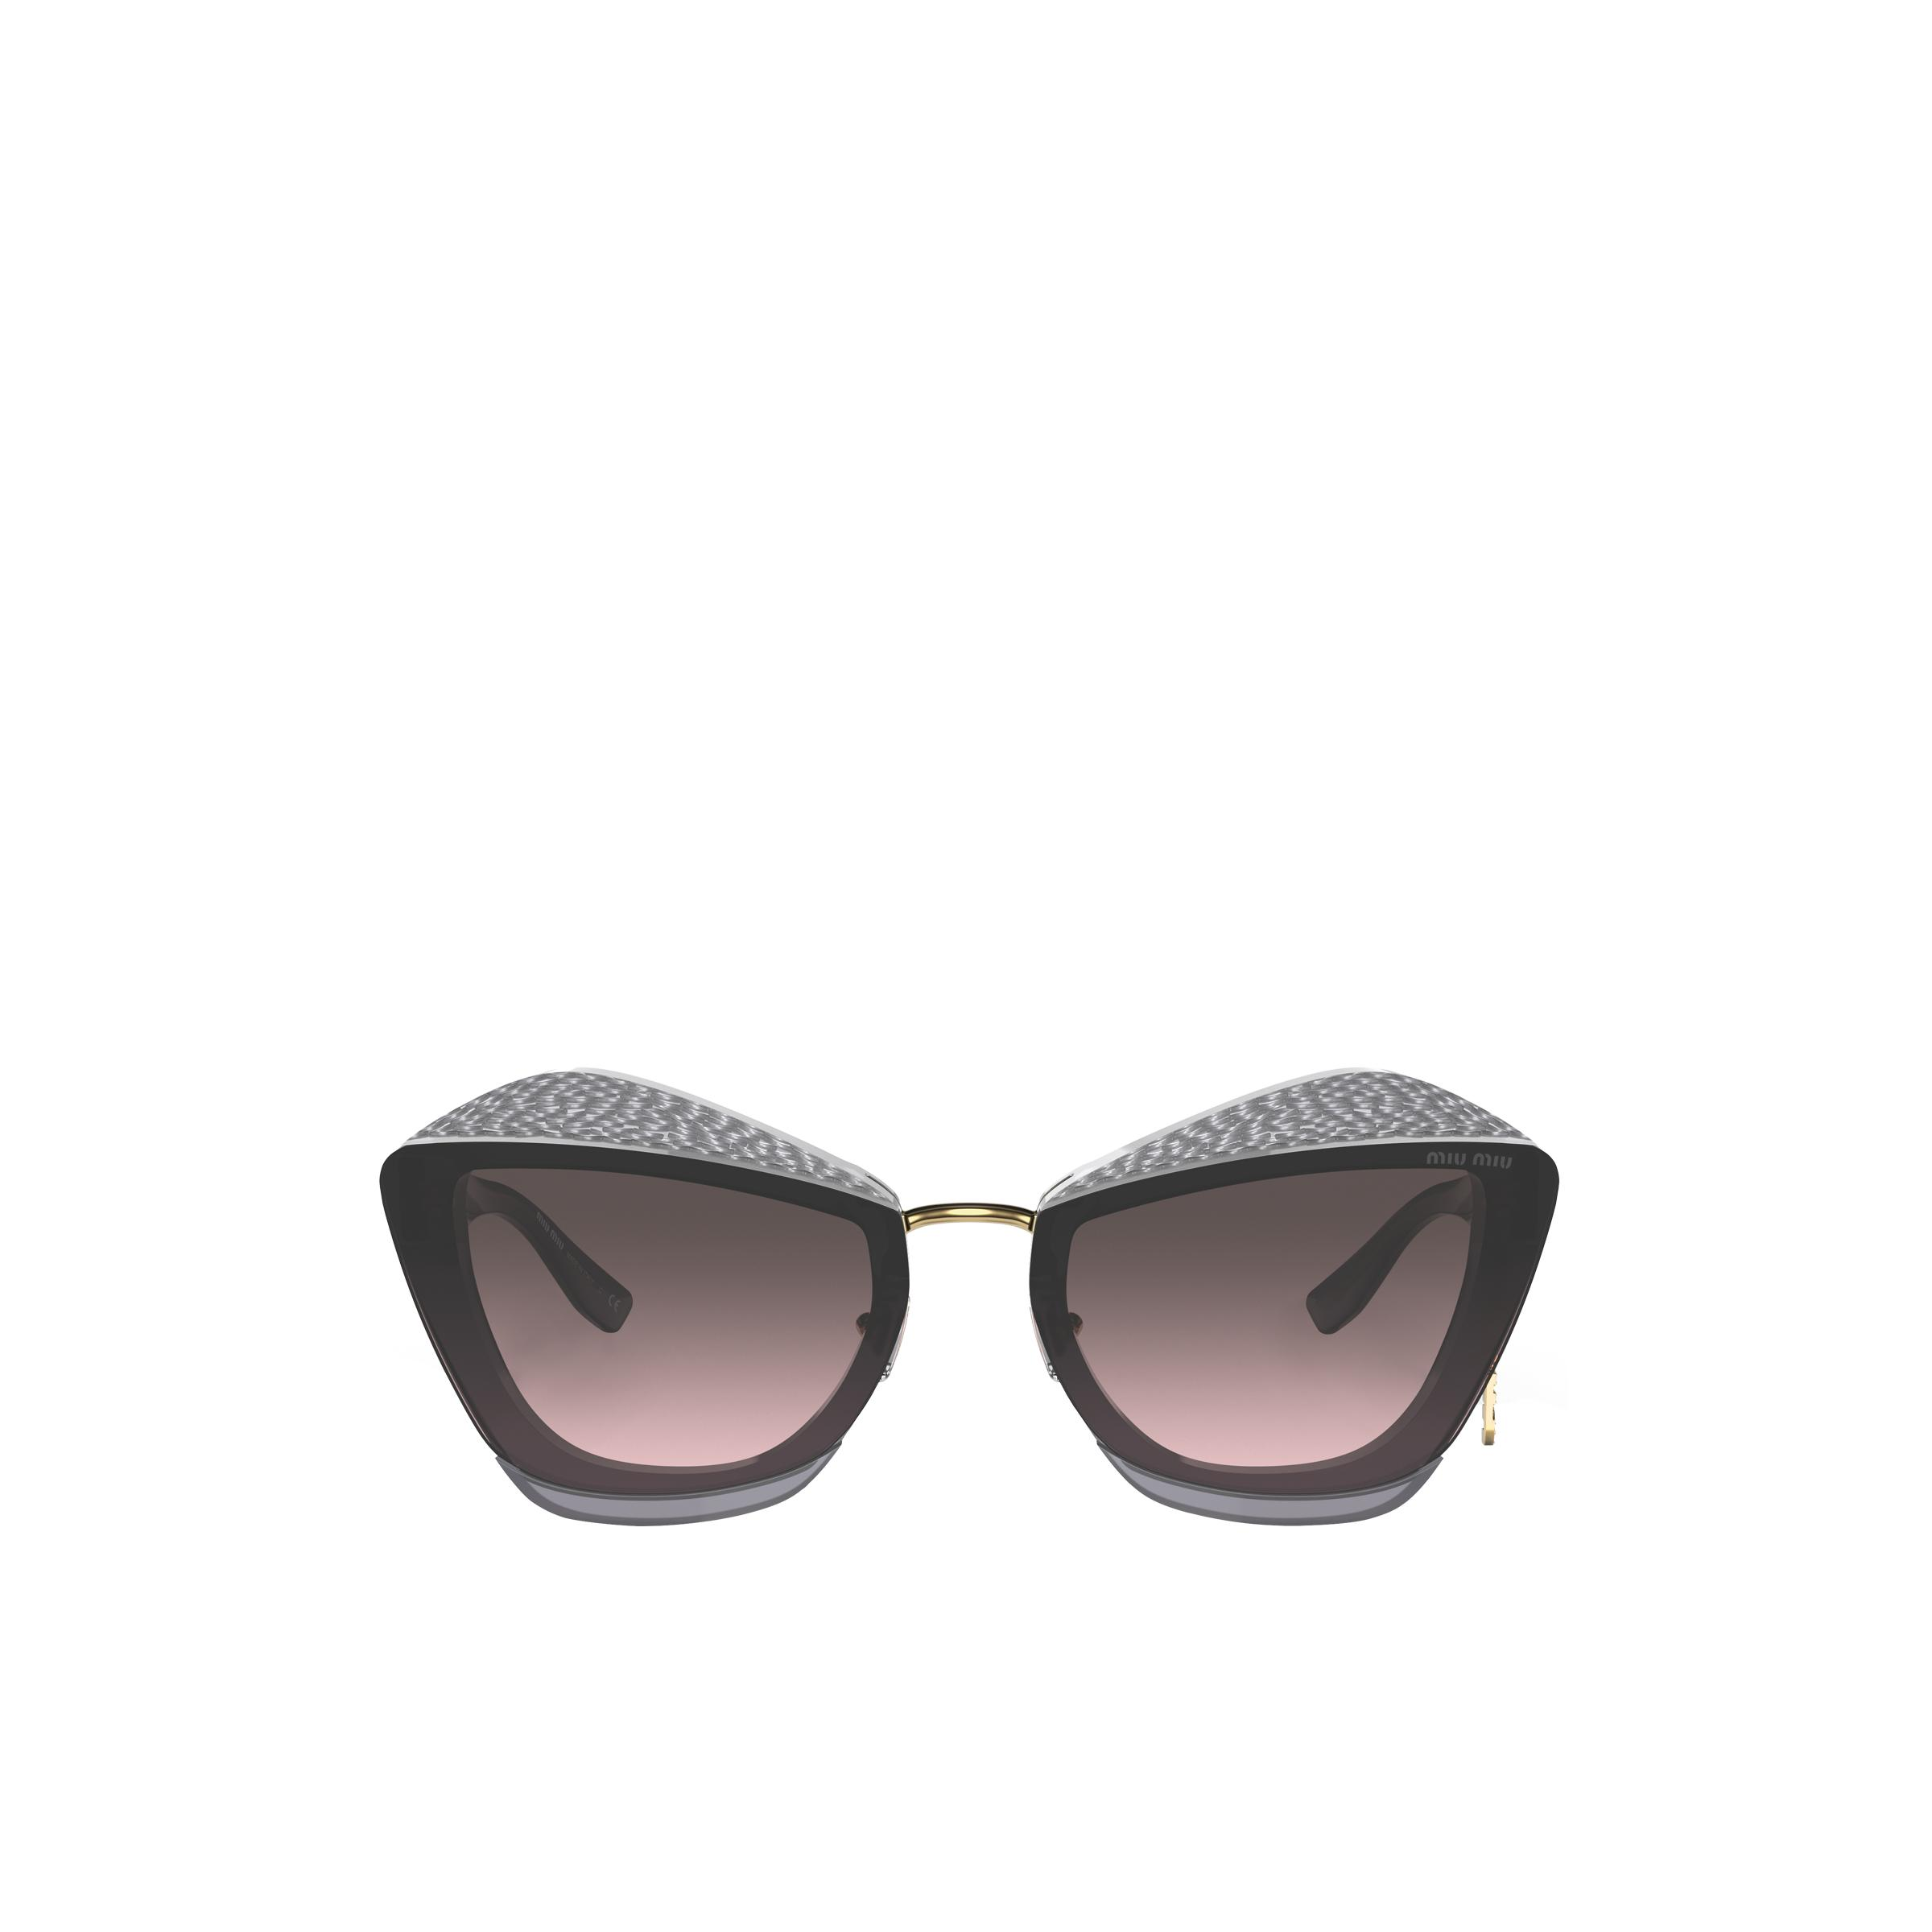 Charms Sunglasses Women Gray To Alabaster Gradient